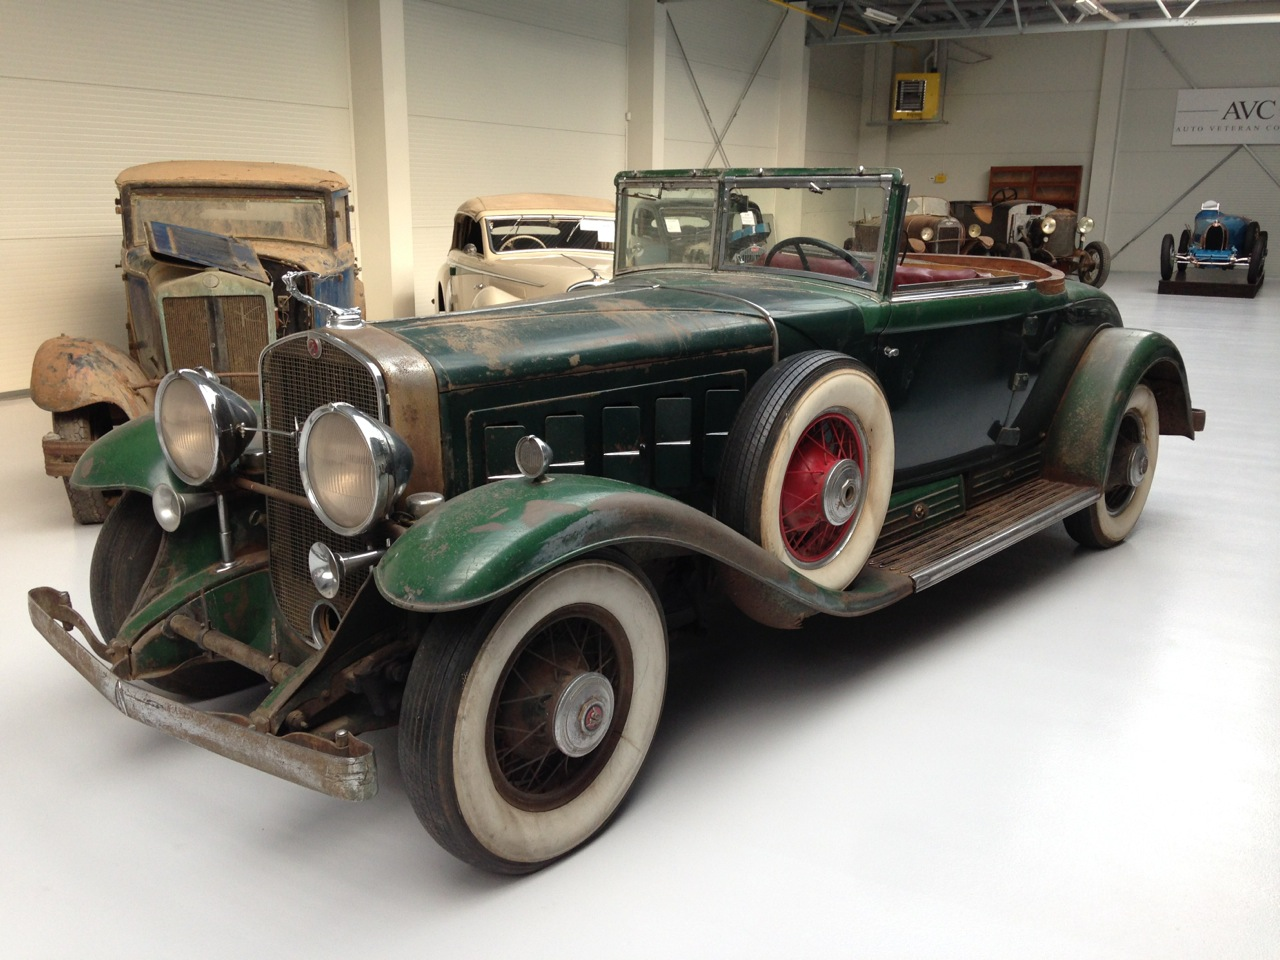 AVC - 1930 Cadillac V16 for sale